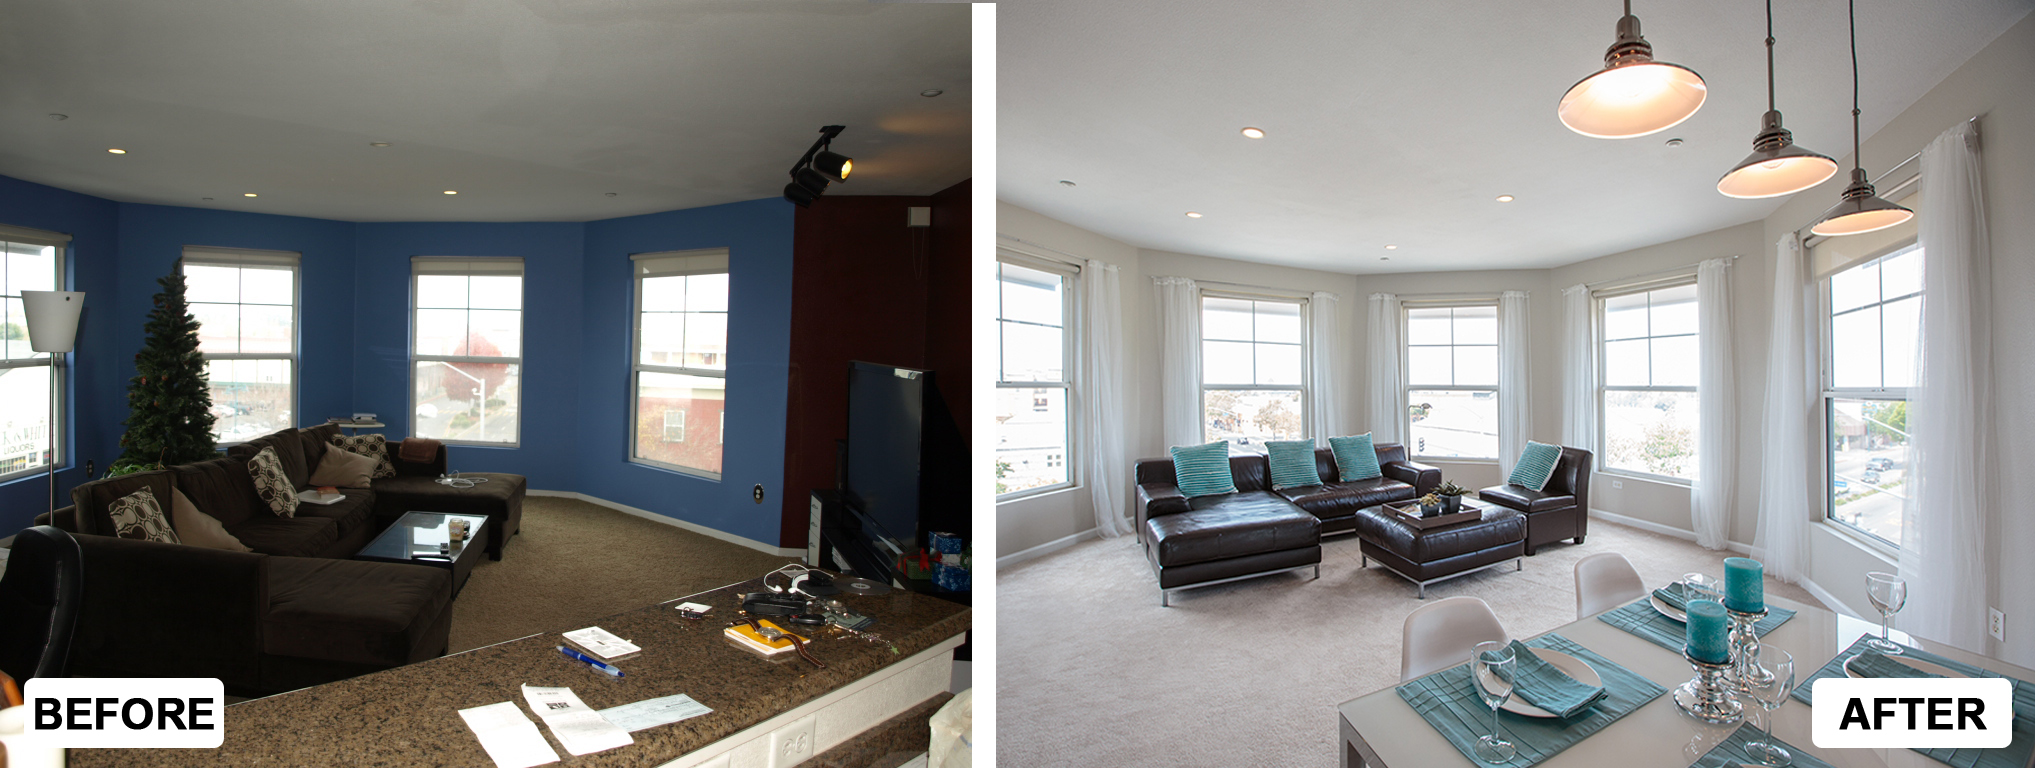 Before Amp After Interior Meryl And Miller Llc